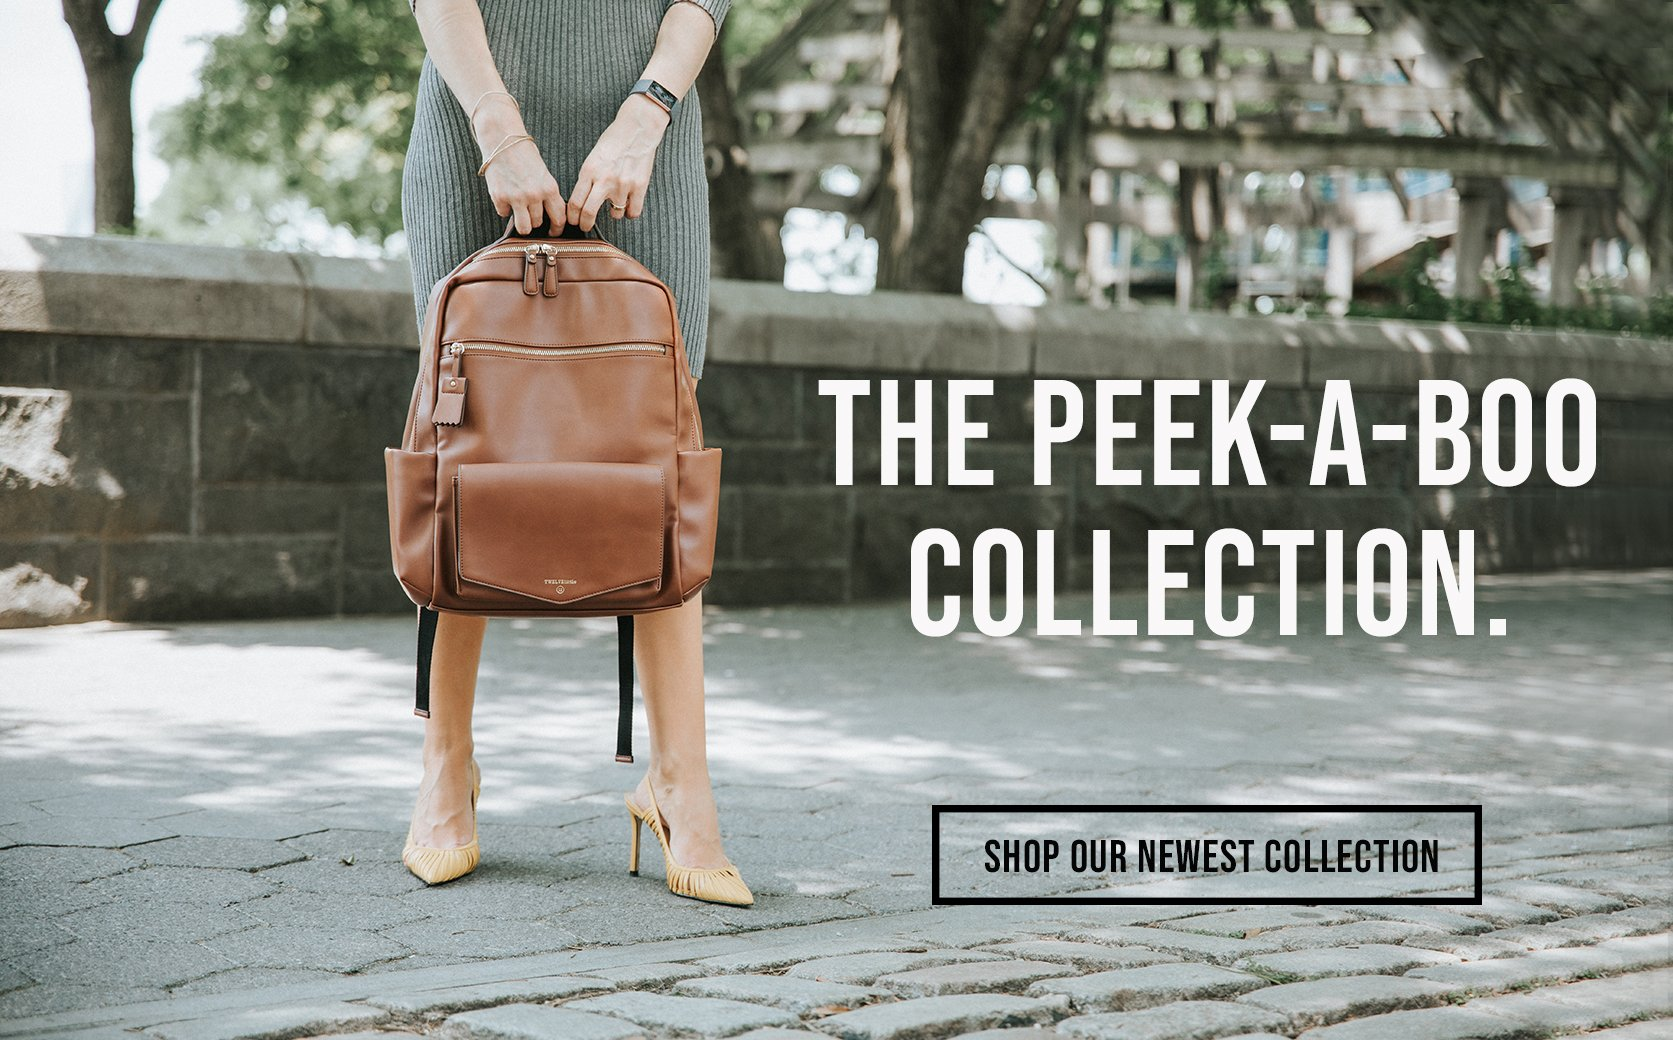 twelve little peek-a-boo collection diaper bags